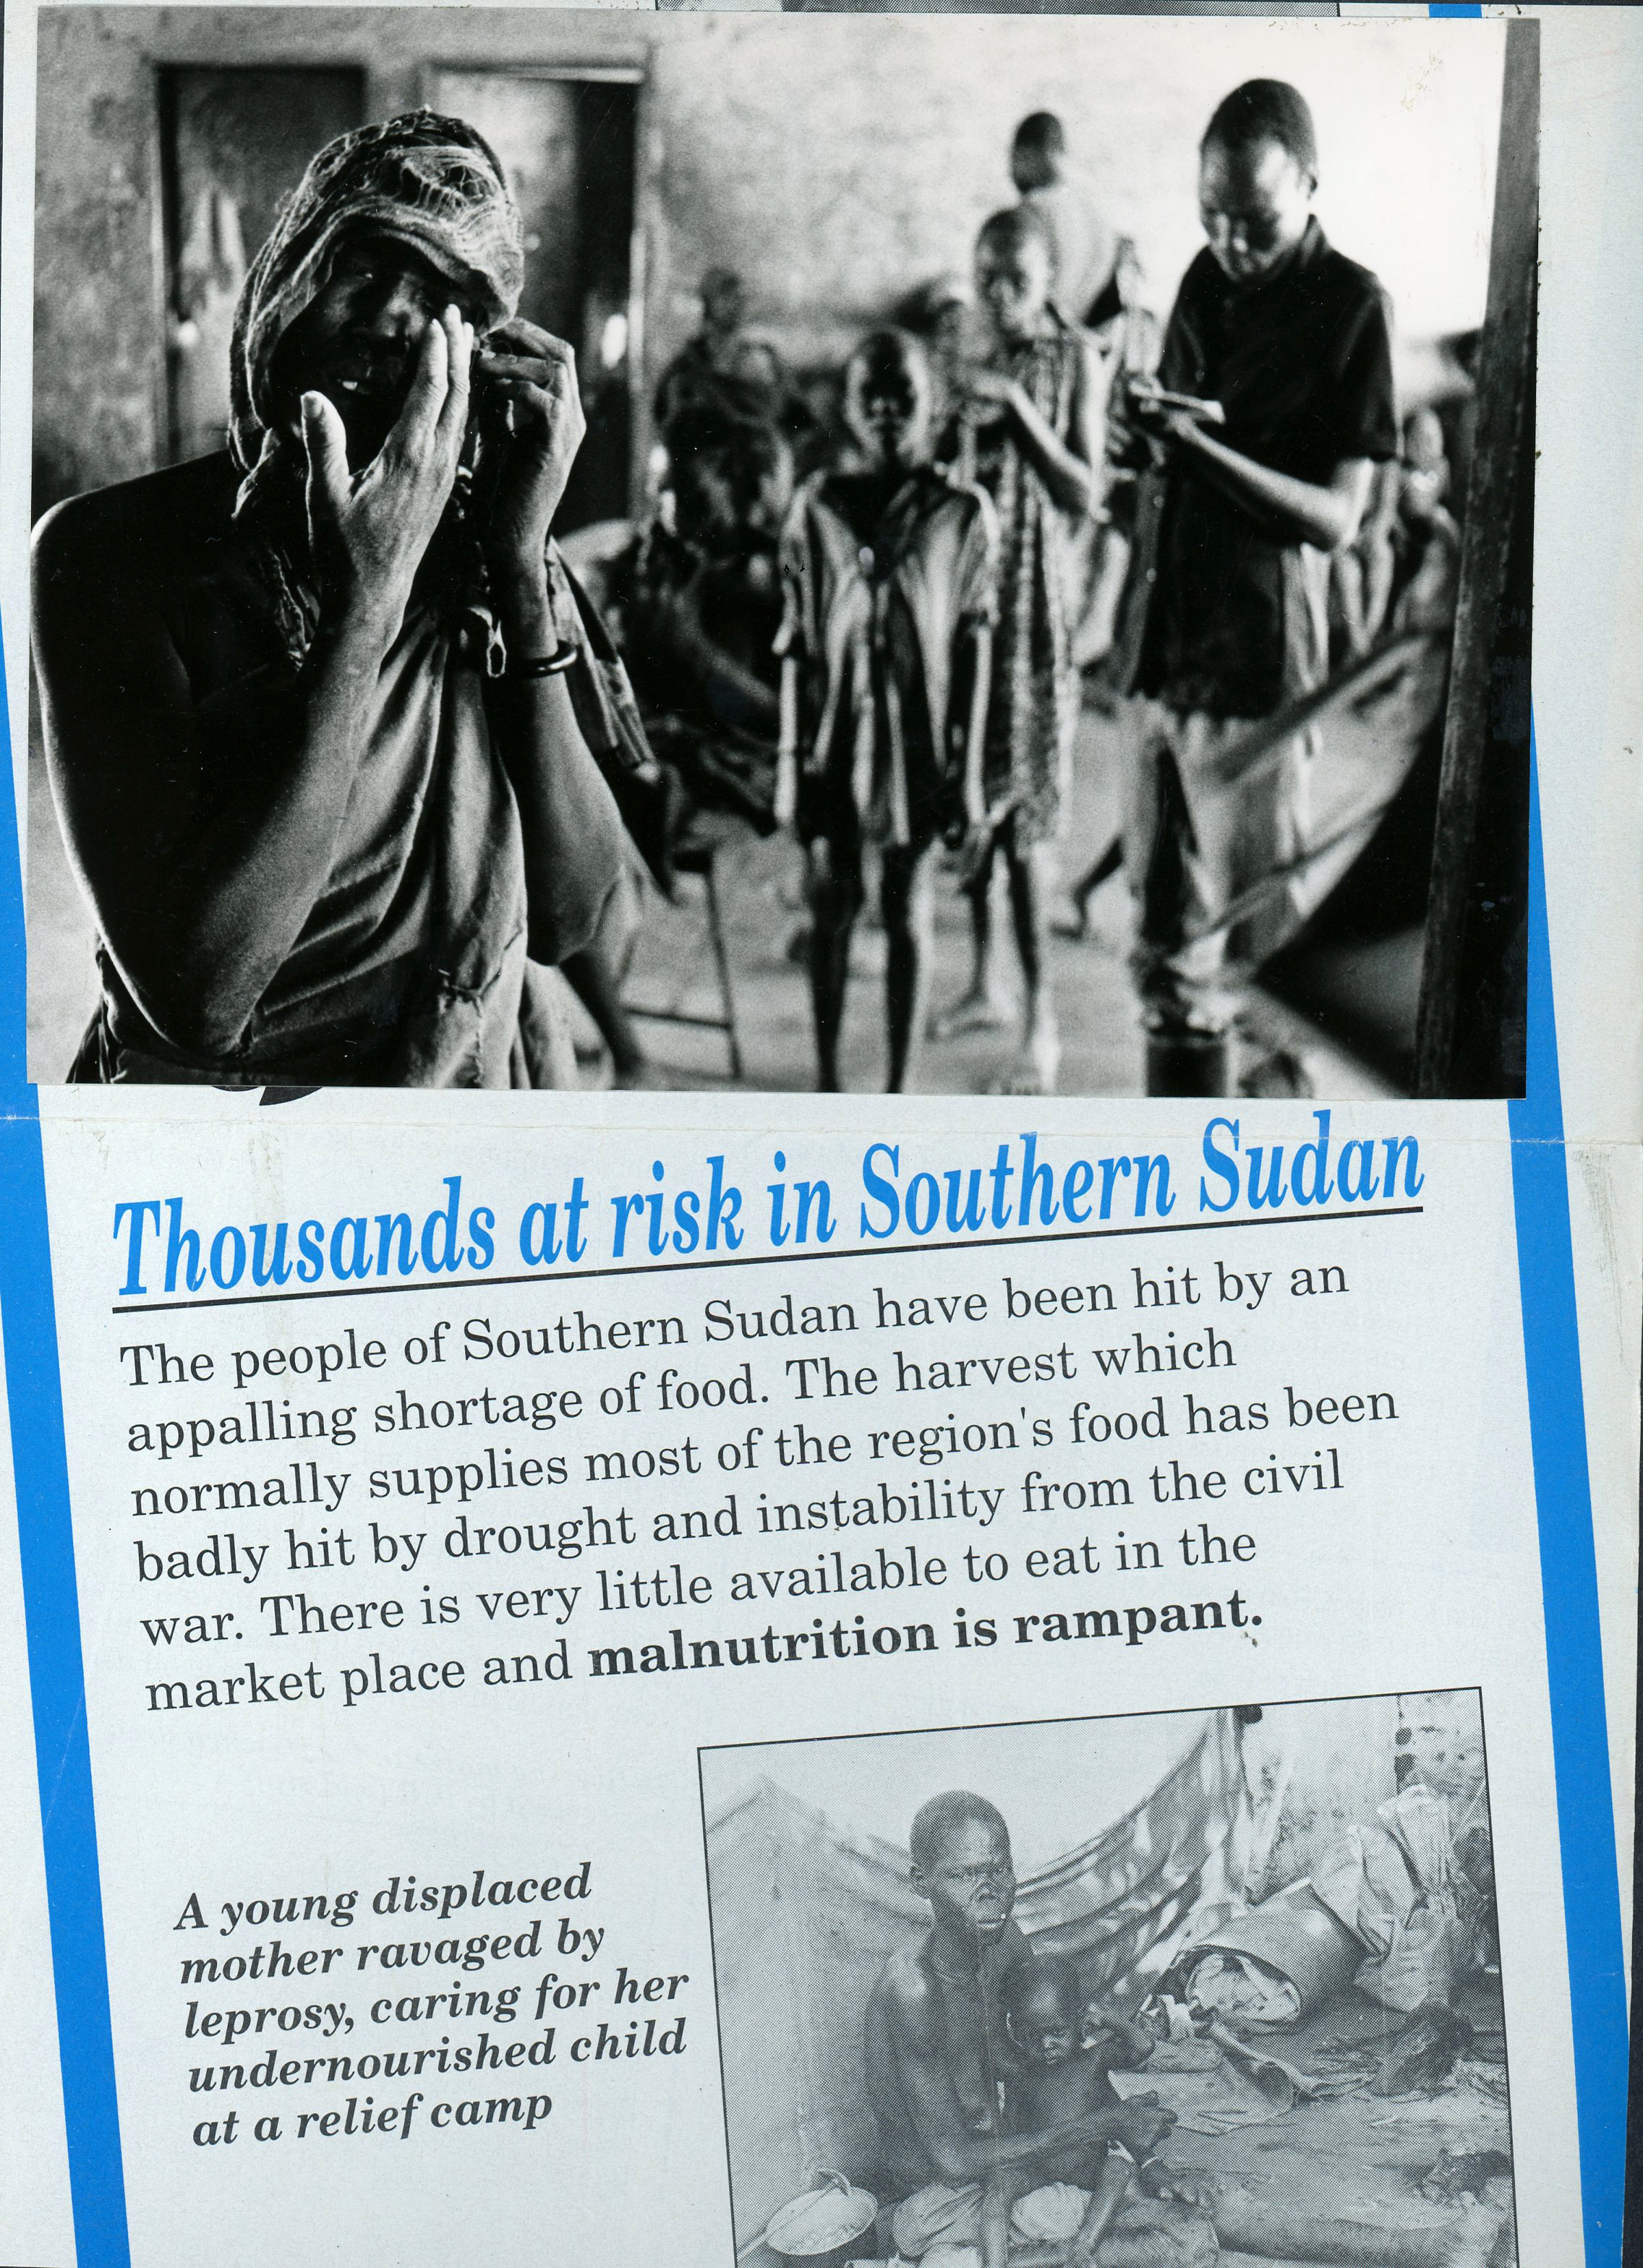 Link to newspaper article   on South Sudan